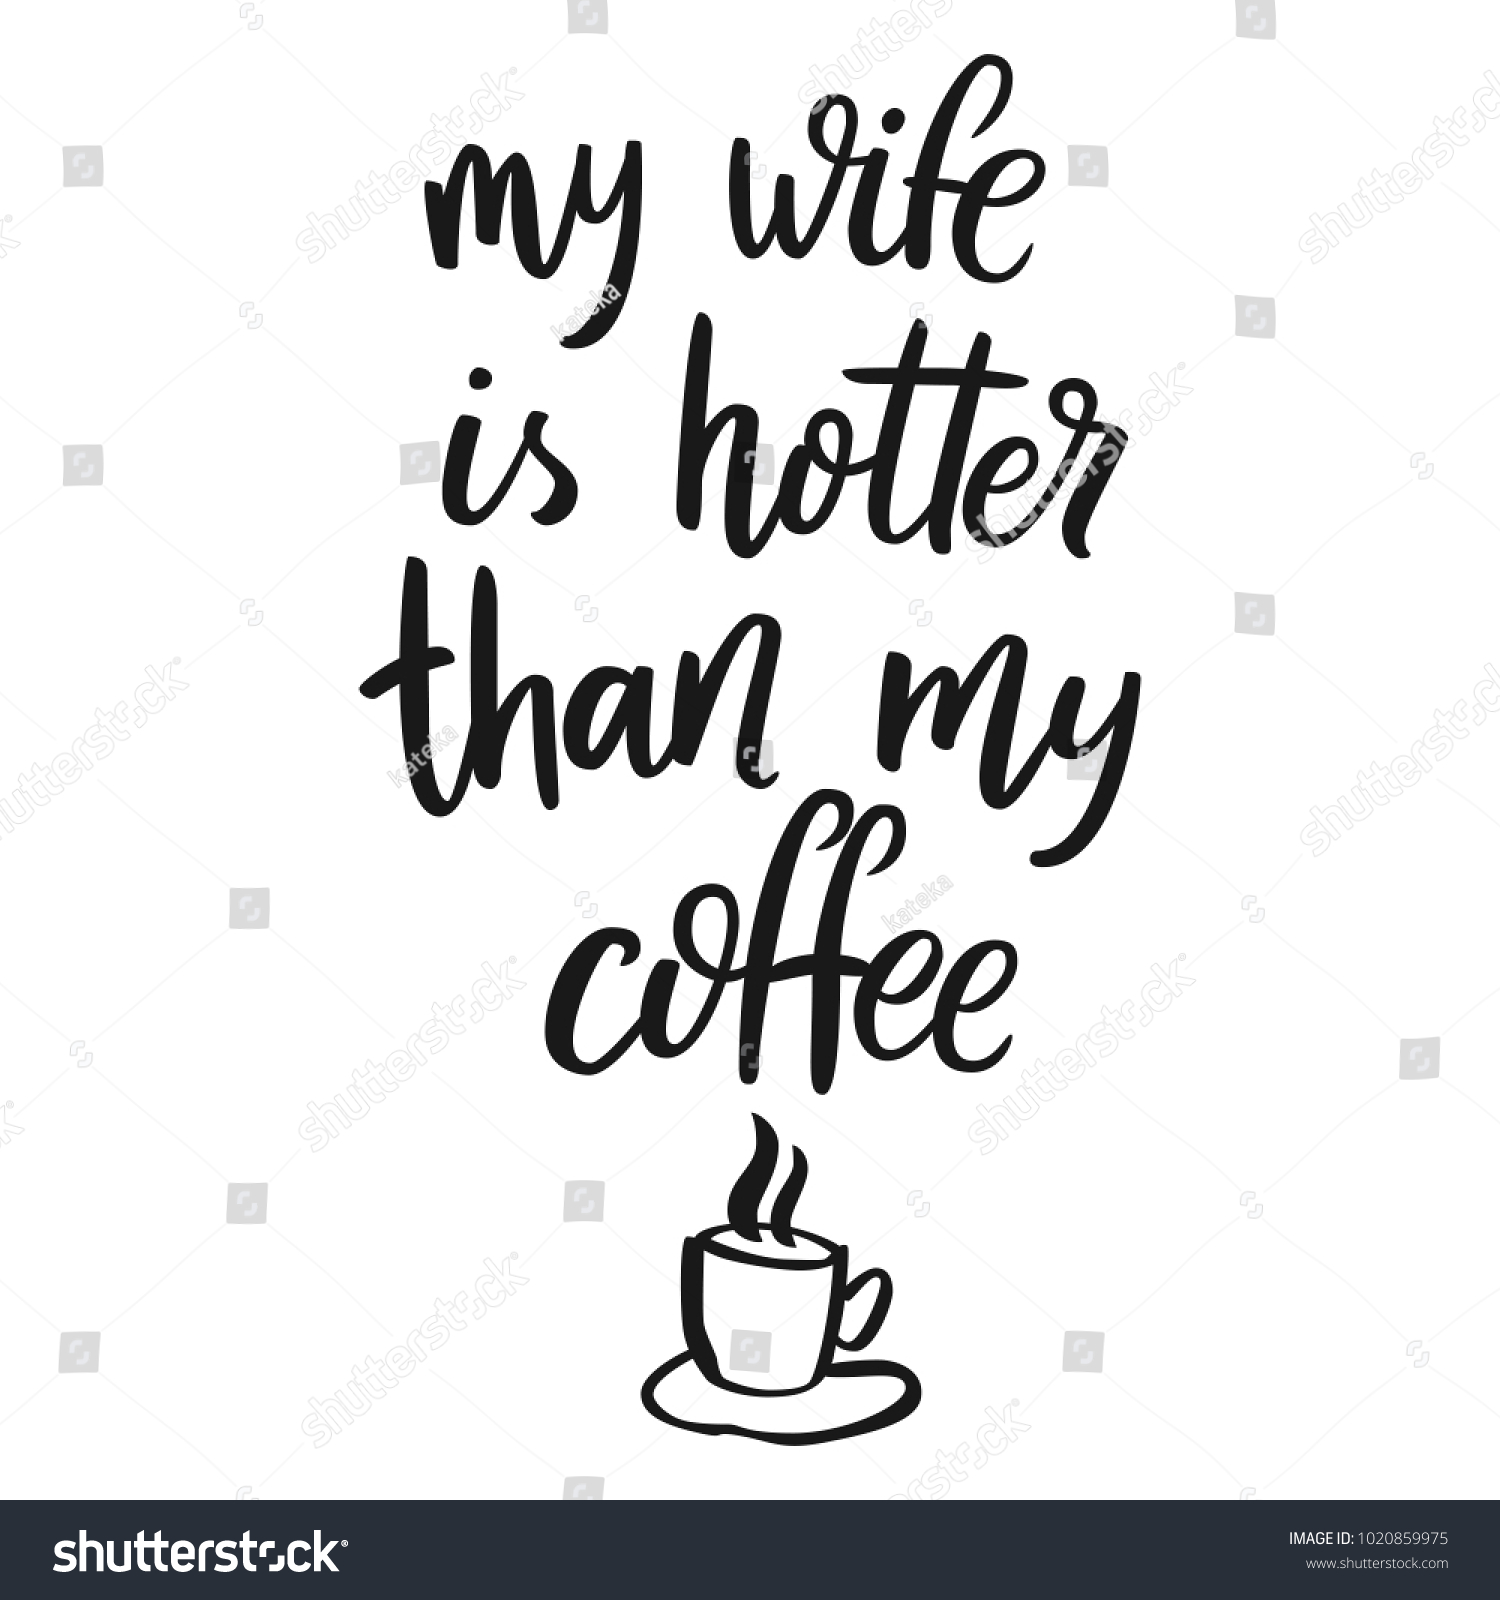 My Wife Hotter Than My Coffee Stock Vector Royalty Free 1020859975